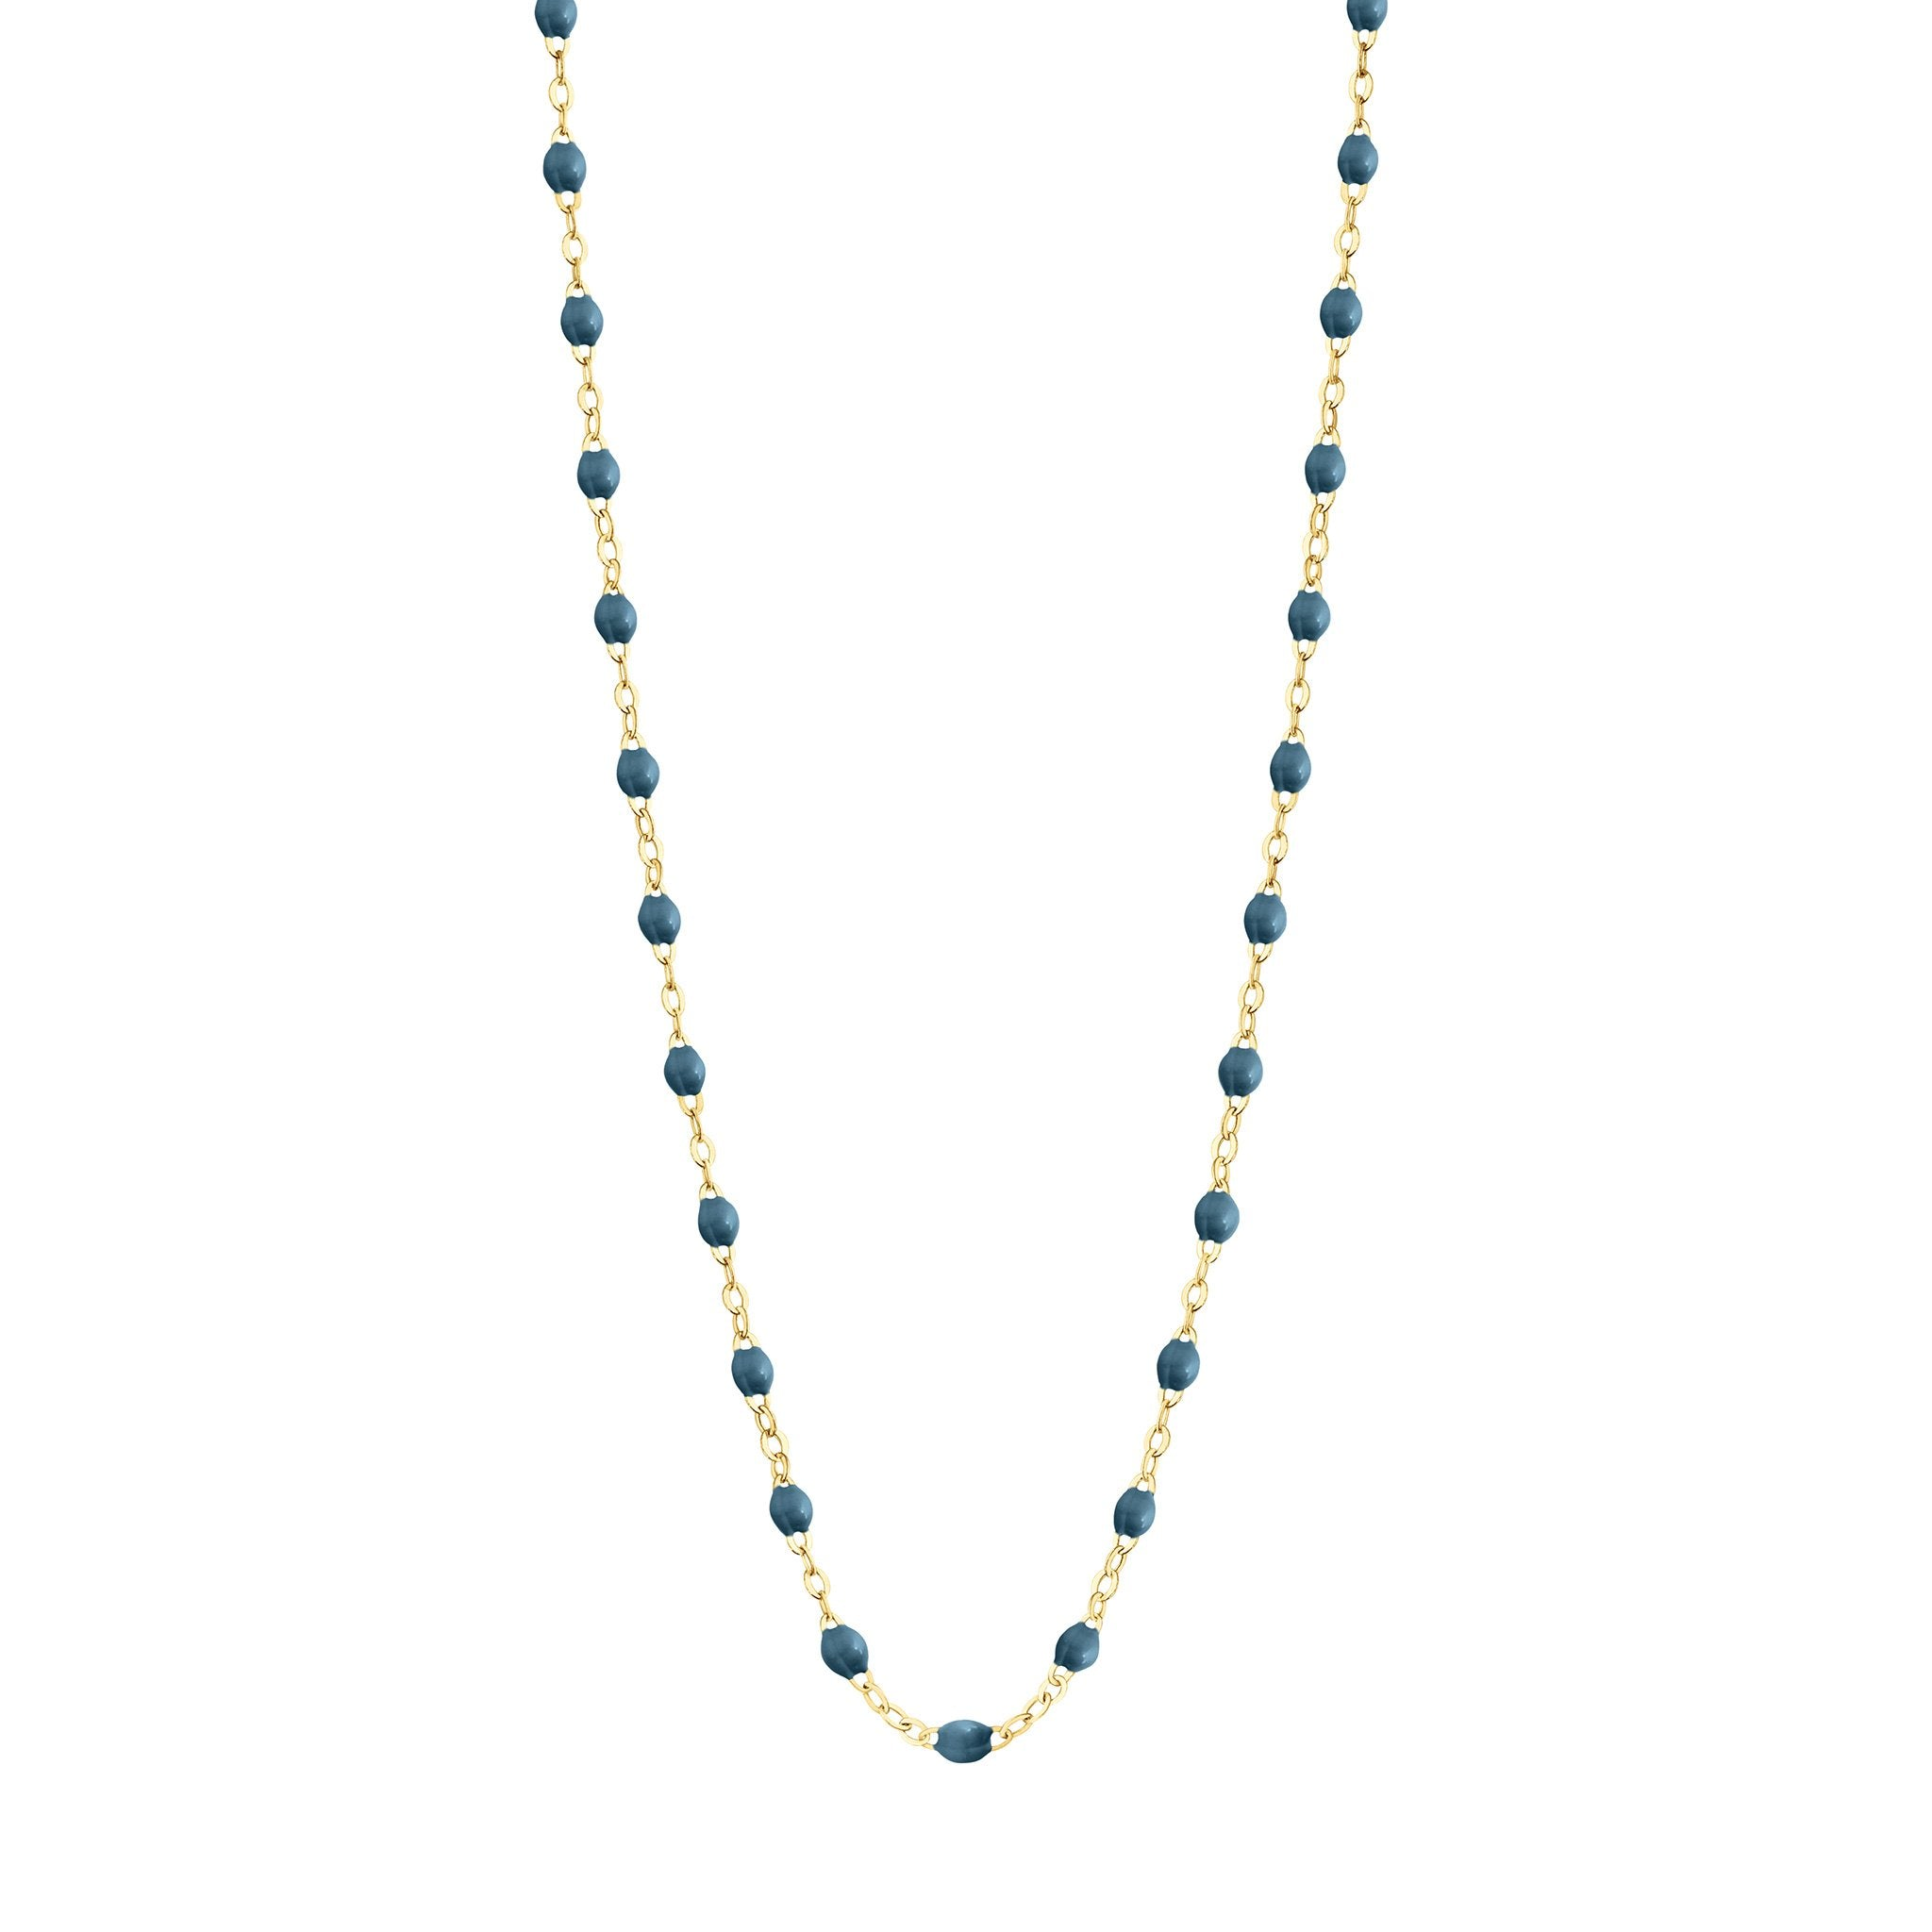 Gigi Clozeau - Classic Gigi Jeans necklace, Yellow Gold, 17.7""